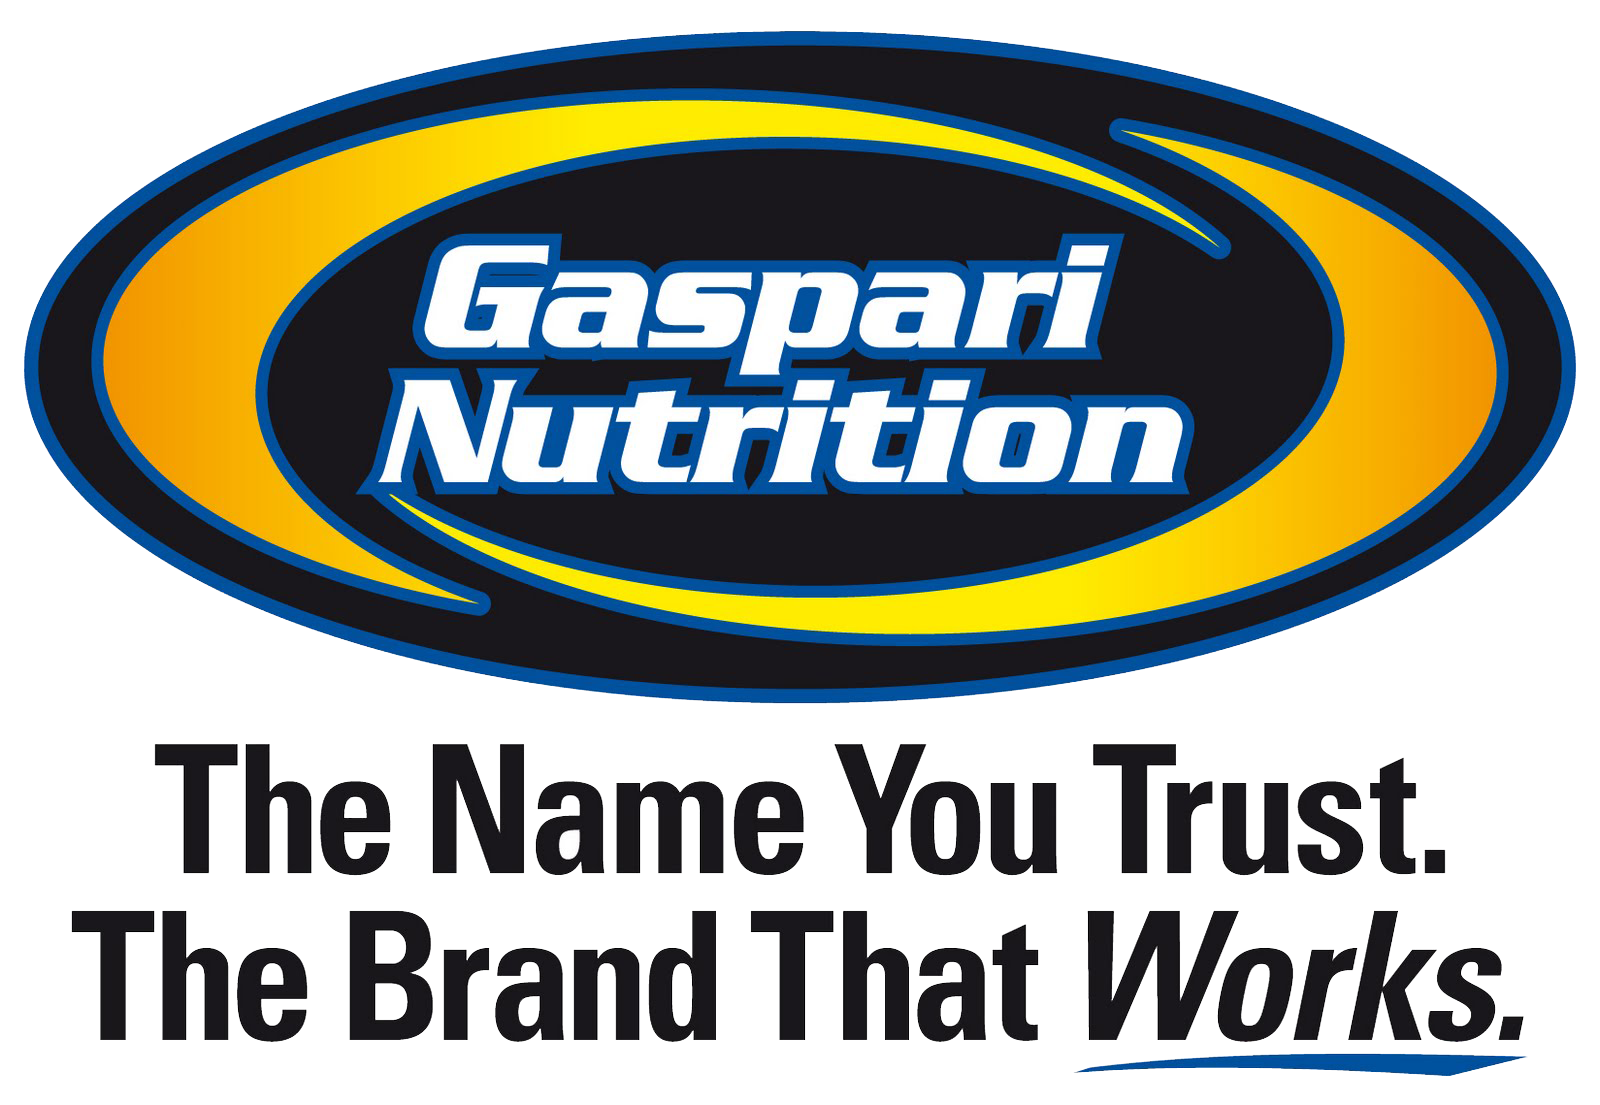 Gaspari-Nutrition-Logo-Muscleintensity.com